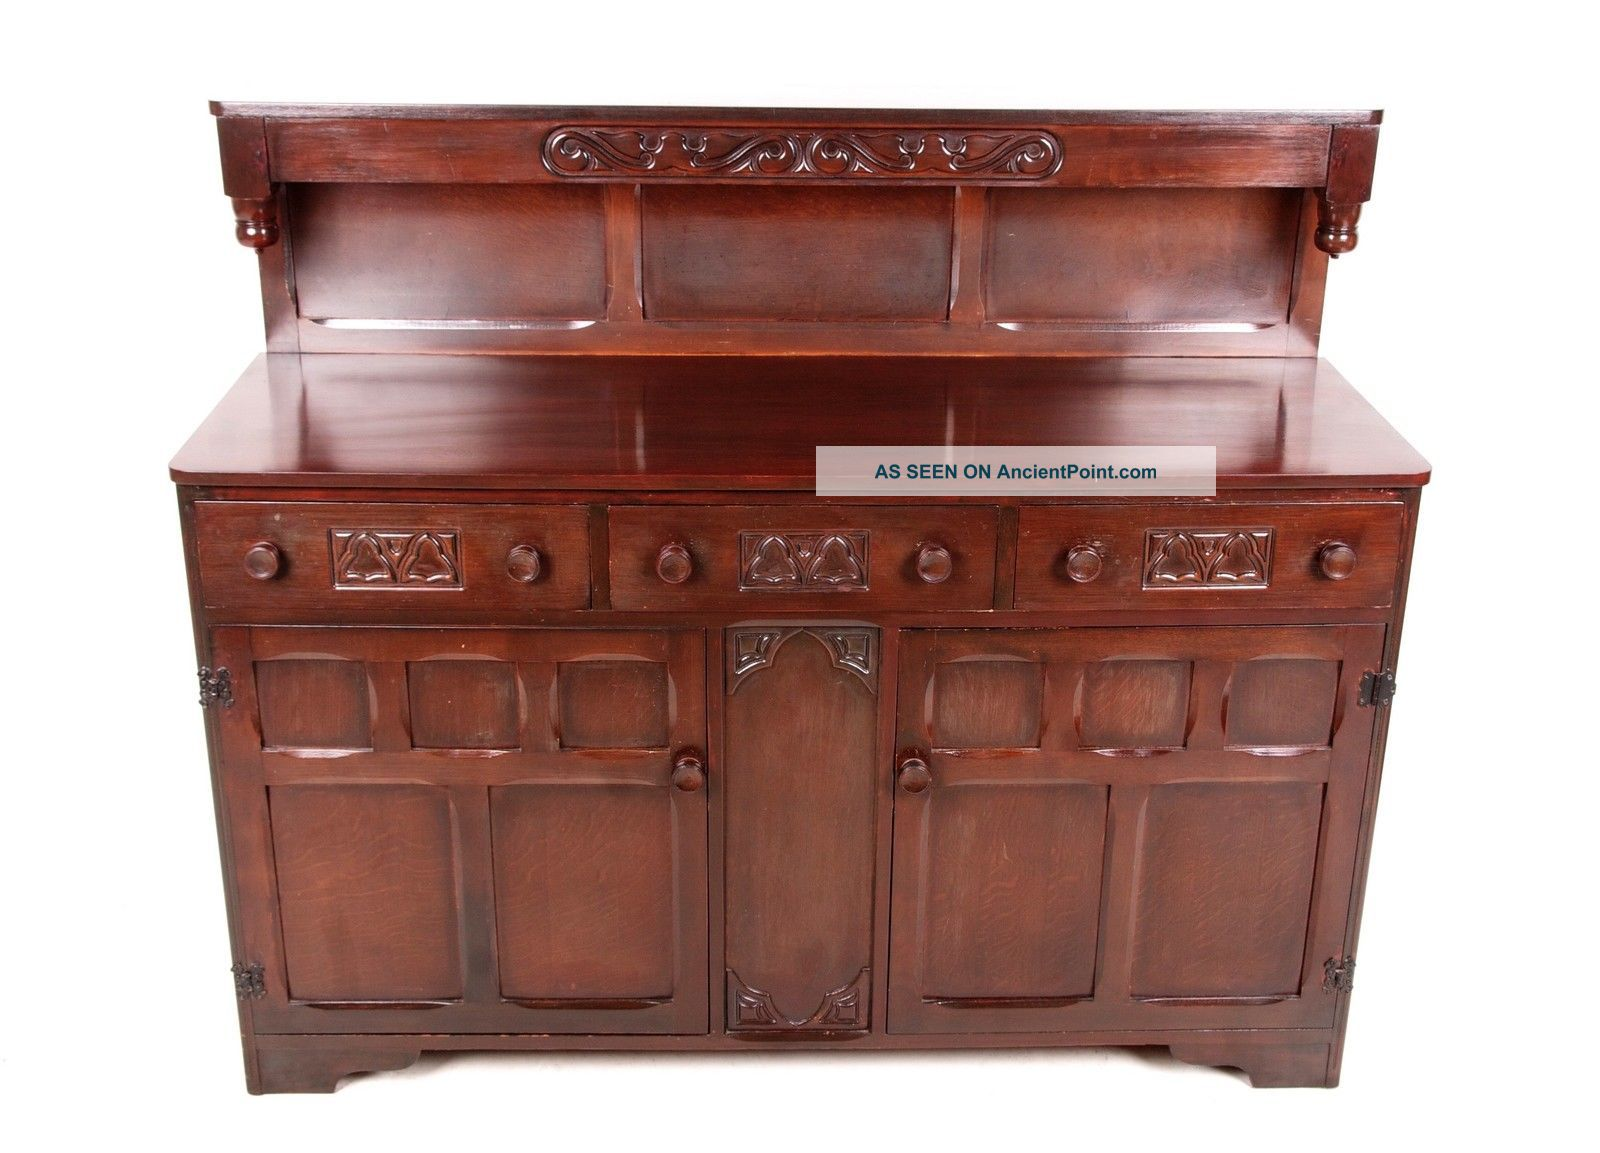 Antique Vintage Oak Sideboard Buffet Highboard Credenza Jacobean Carved 1900-1950 photo